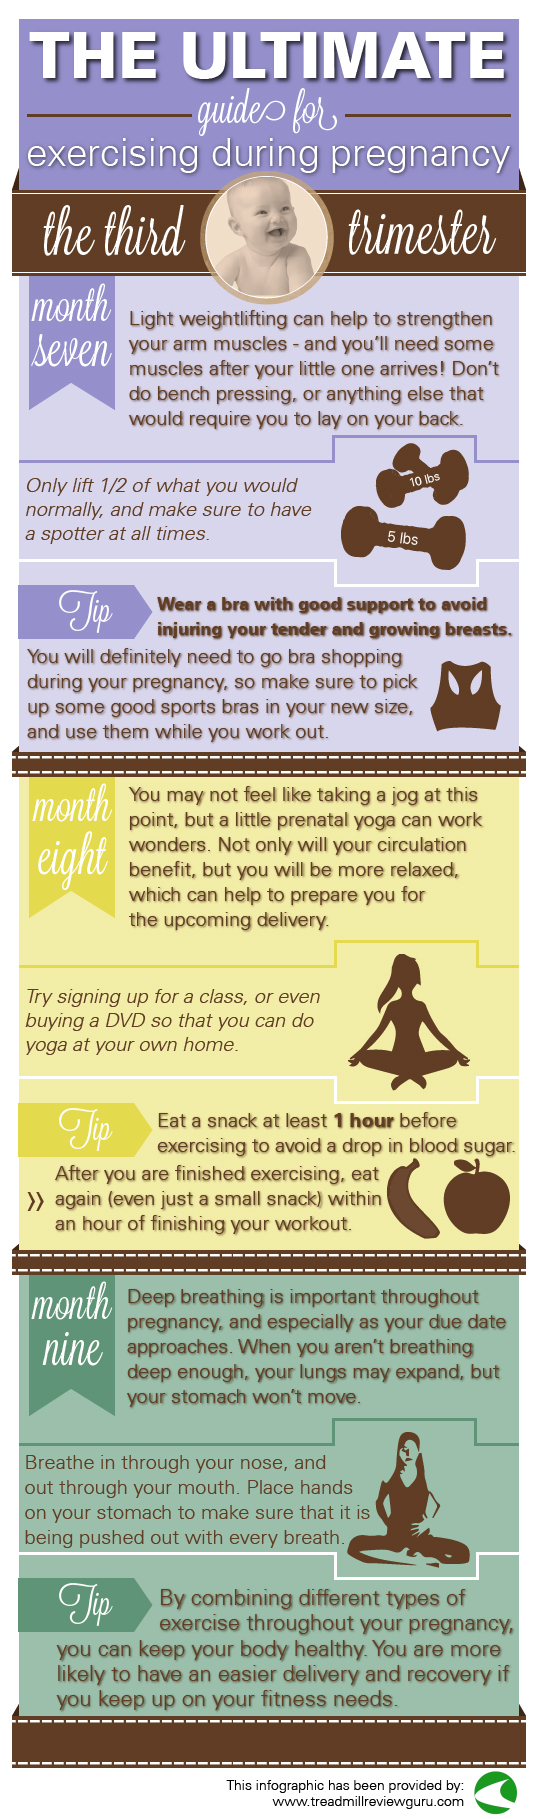 third trimester exercise guide